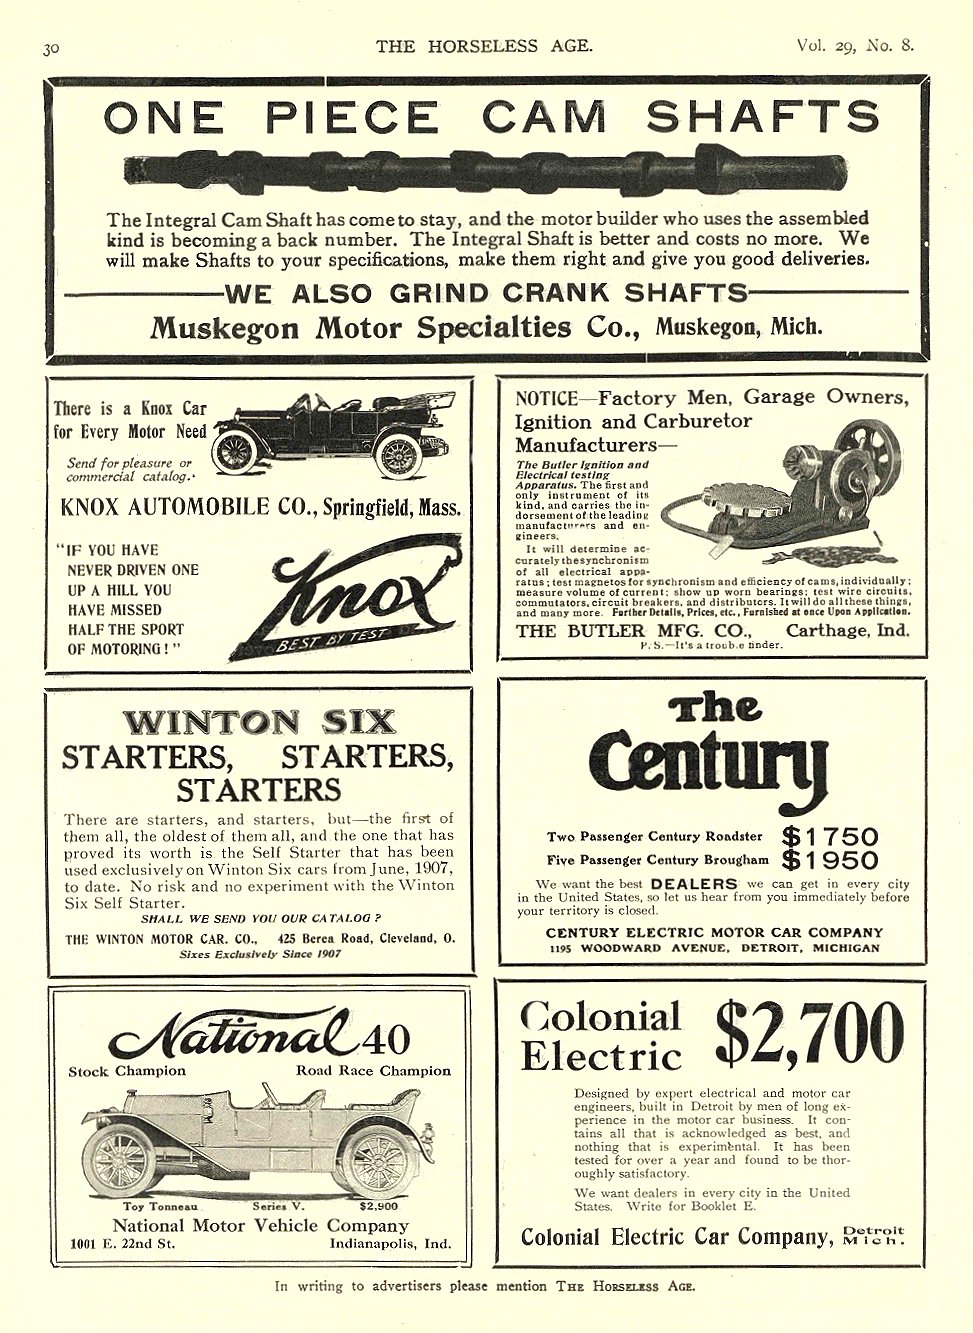 1912 2 21 CENTURY Electric The Century $1750 $1950 CENTURY ELECTRIC MOTOR CAR COMPANY Detroit, MICH THE HORSELESS AGE February 21, 1912 9″x12″ page 30